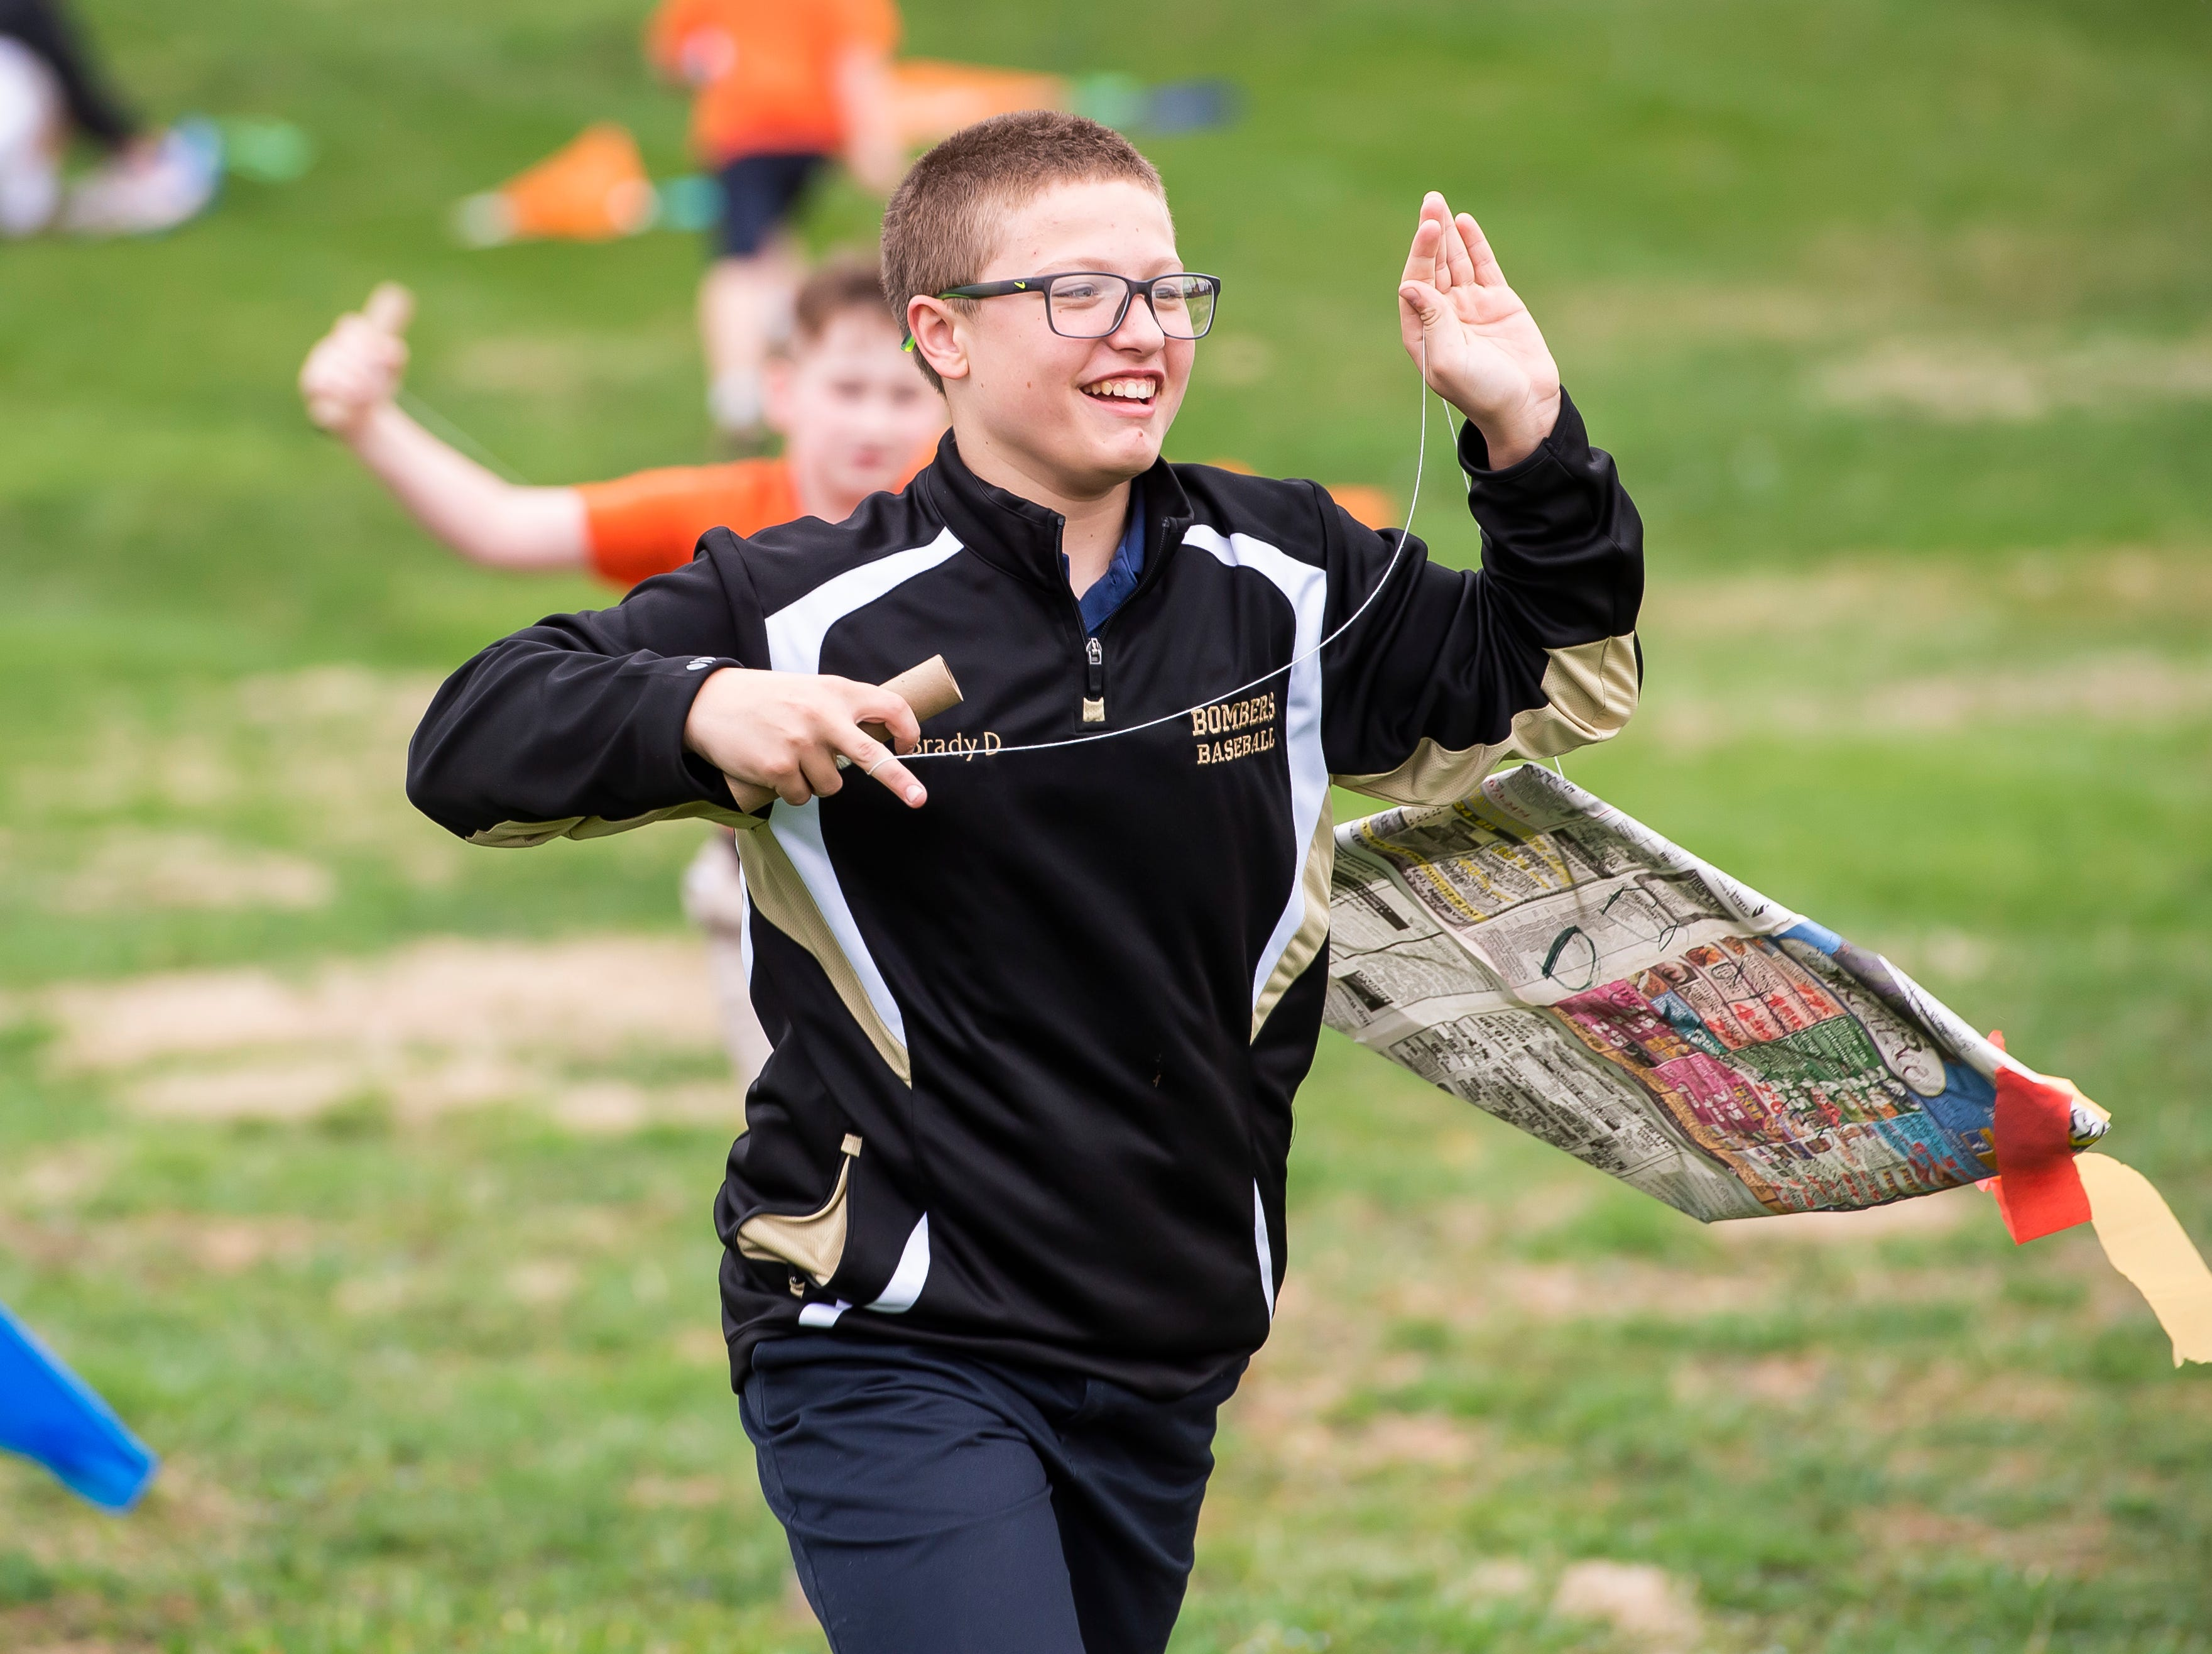 Students from St. Teresa of Calcutta Catholic School fly their homemade kites at the school's Conewago campus on Friday, April 12, 2019.